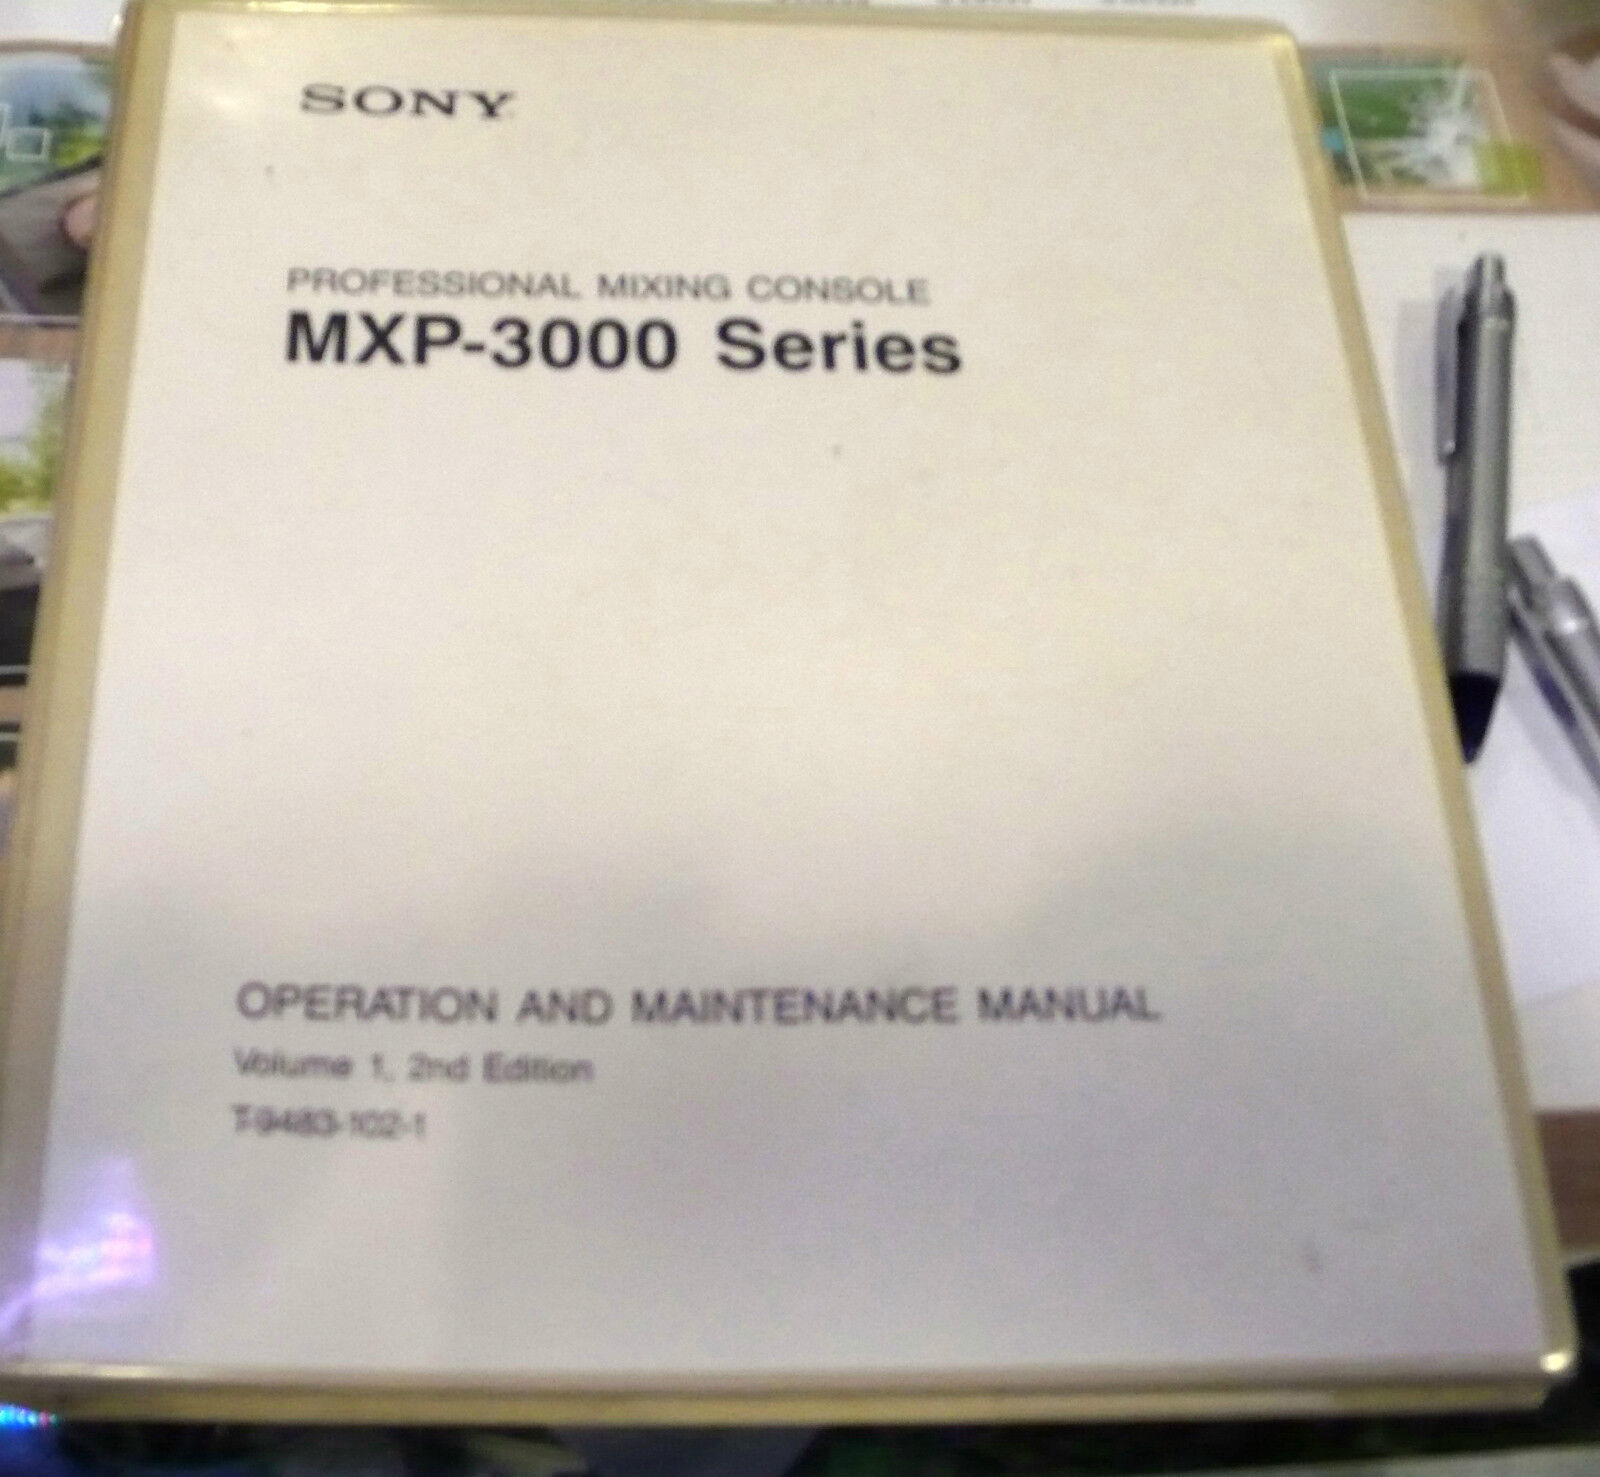 OPERATION AND MAINTANANCE VOL 1   2 ND EDITION MPX3000 SERIES CONSOLE MIXING